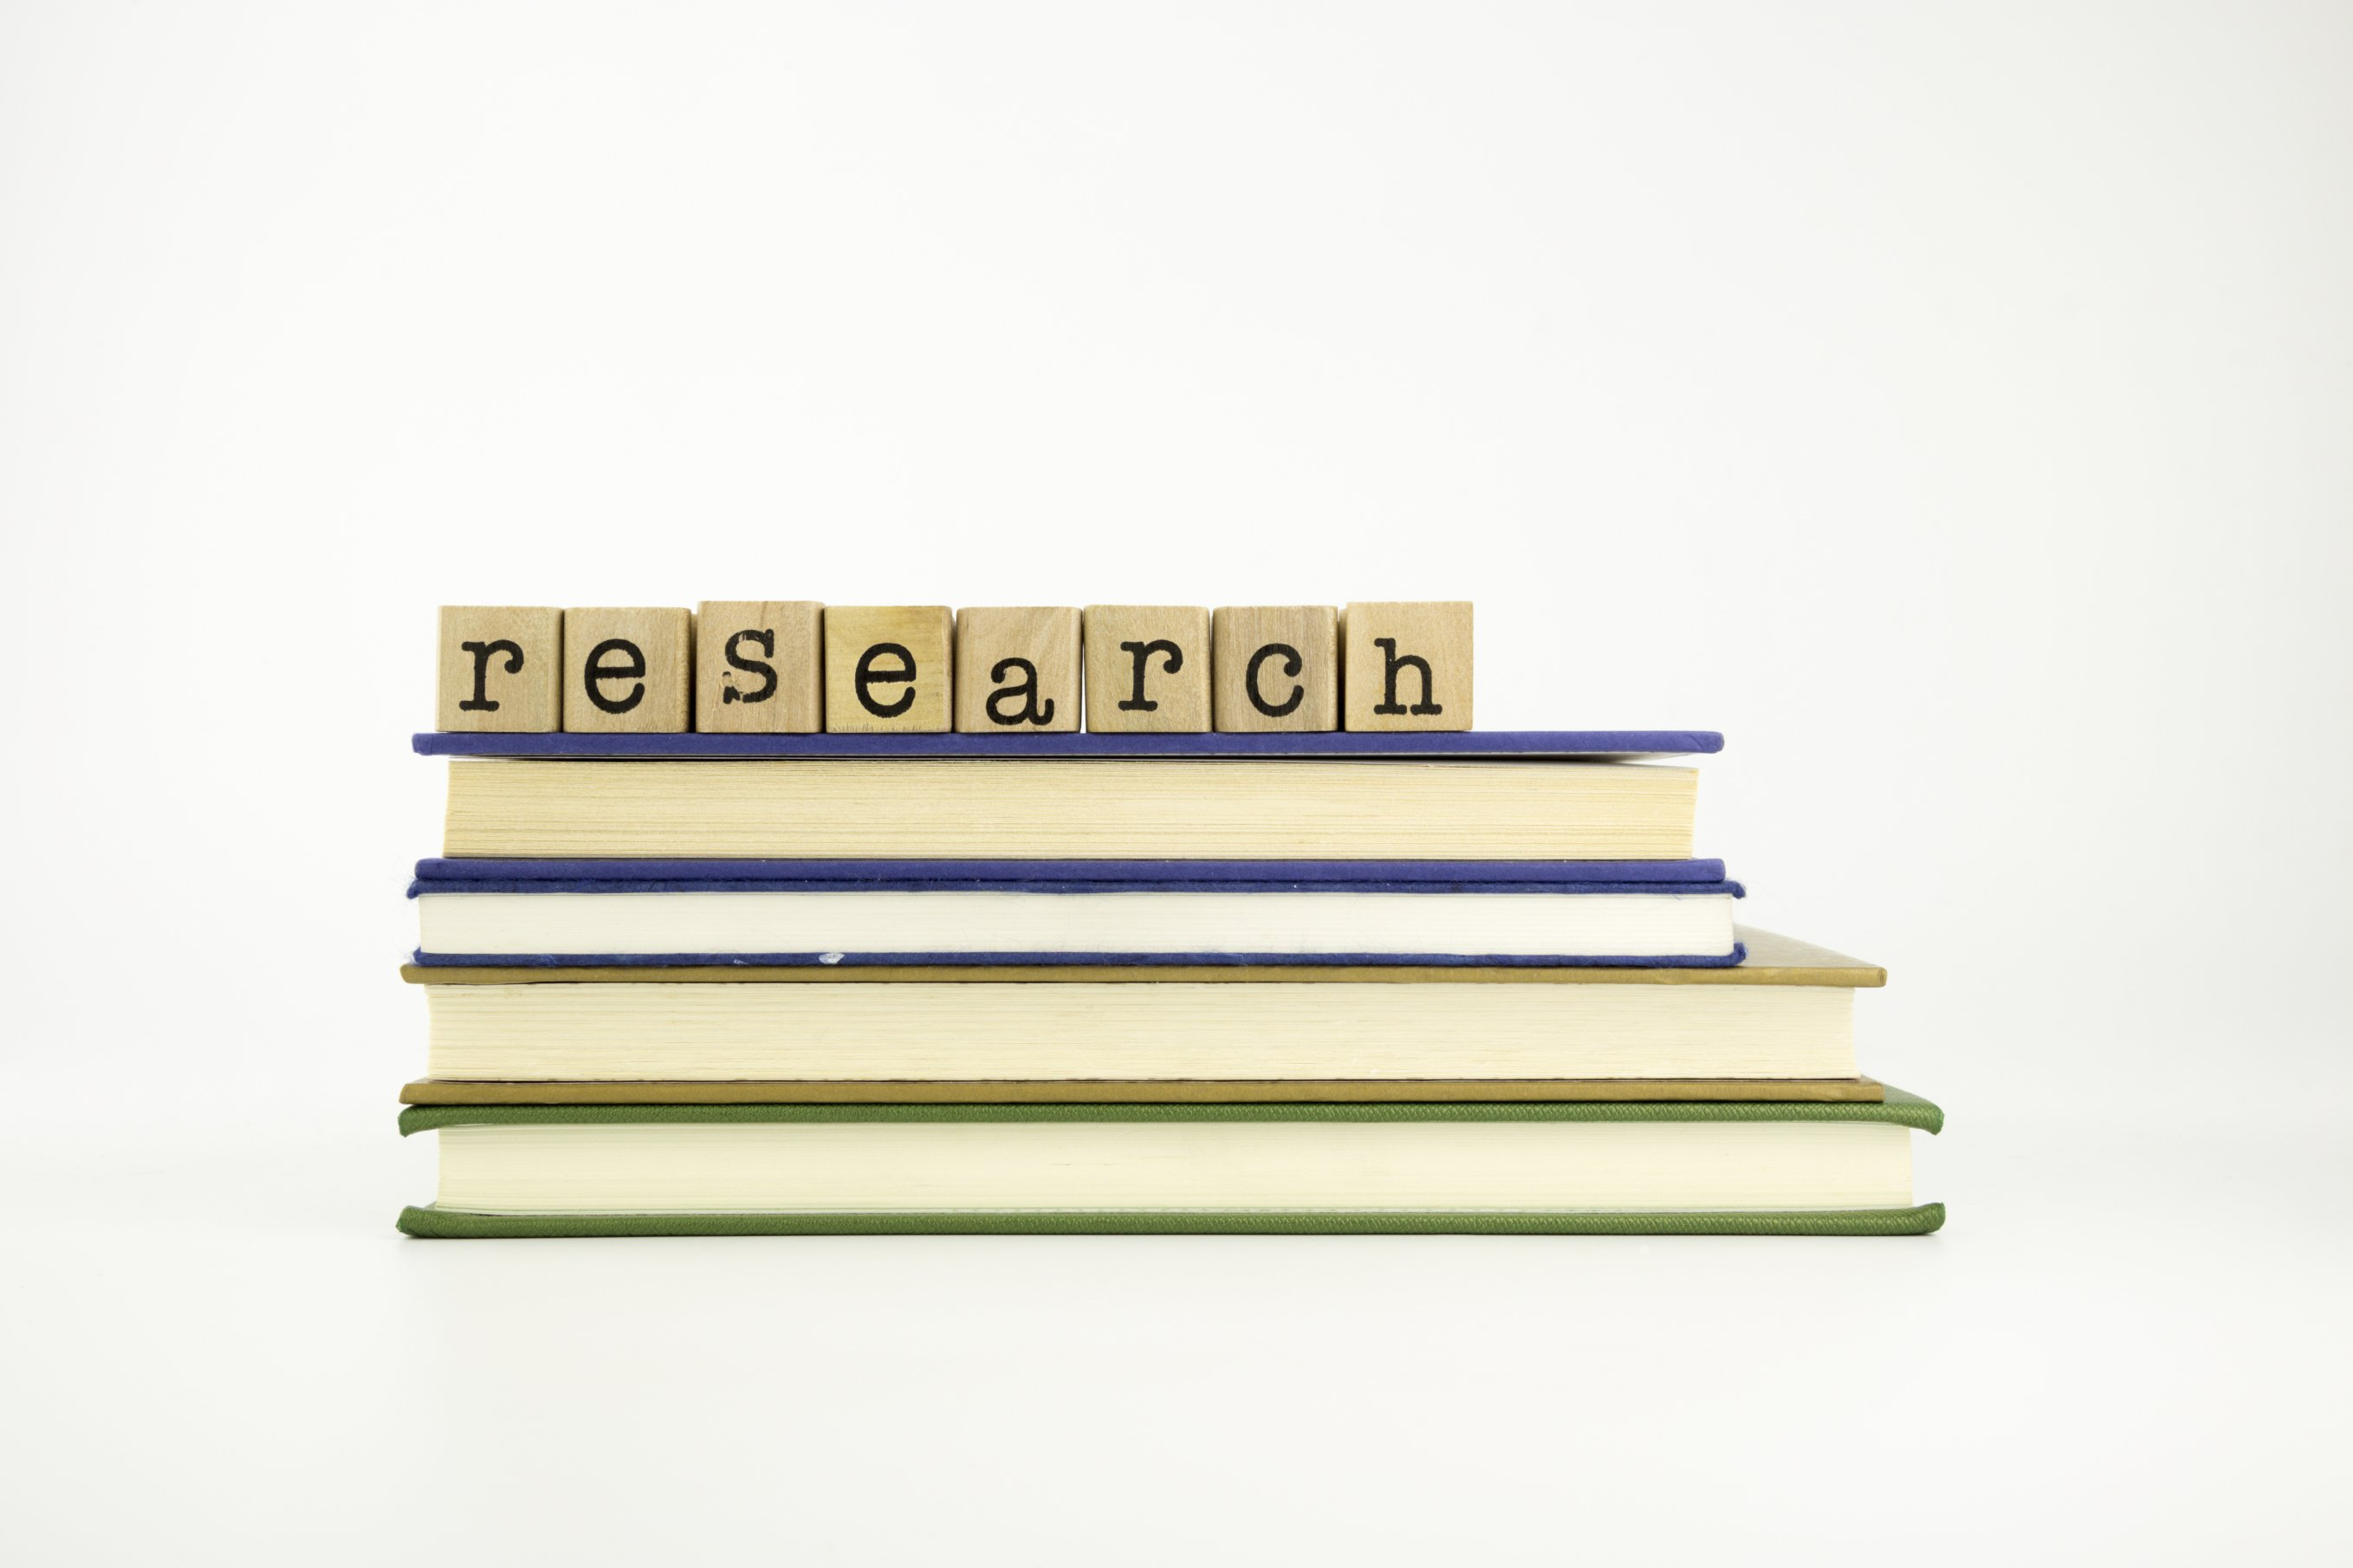 8 free keyword research tools for ppc advertising portent for Portent 2014